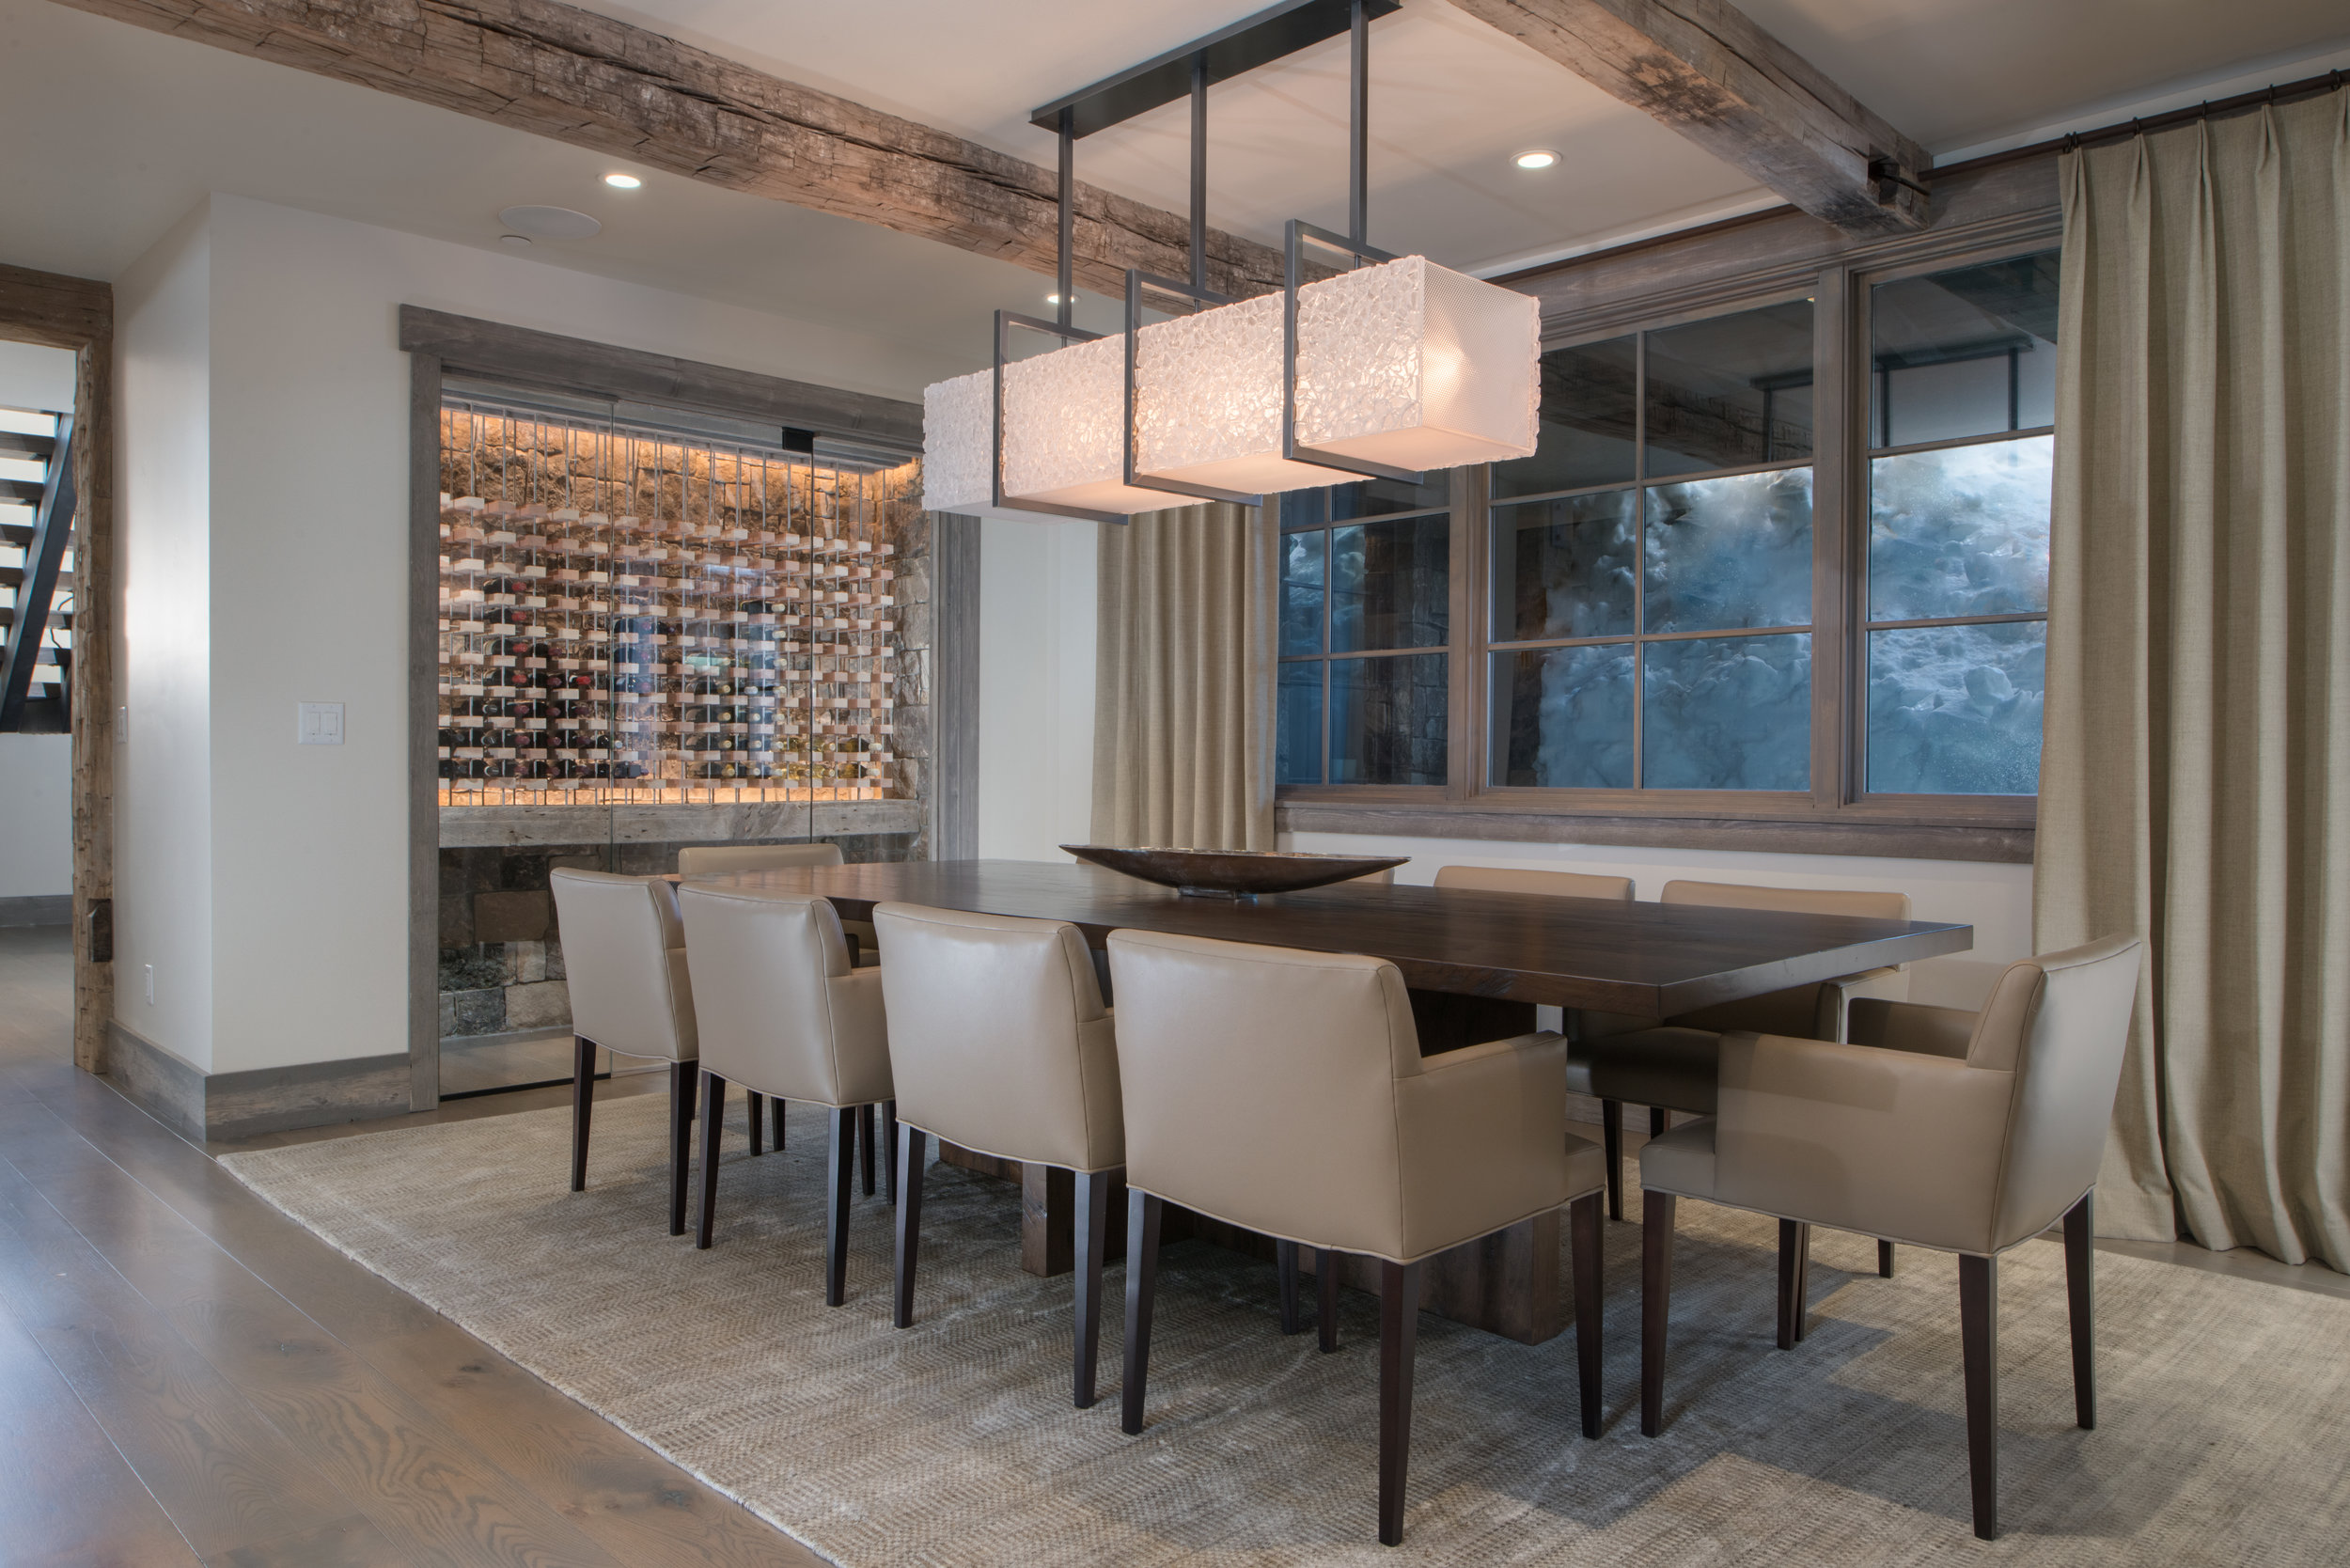 A custom Hammerton linear suspension featuring glistening panels of hand-textured kiln-fused glass. Interior by KAM Designs l Danville, CA